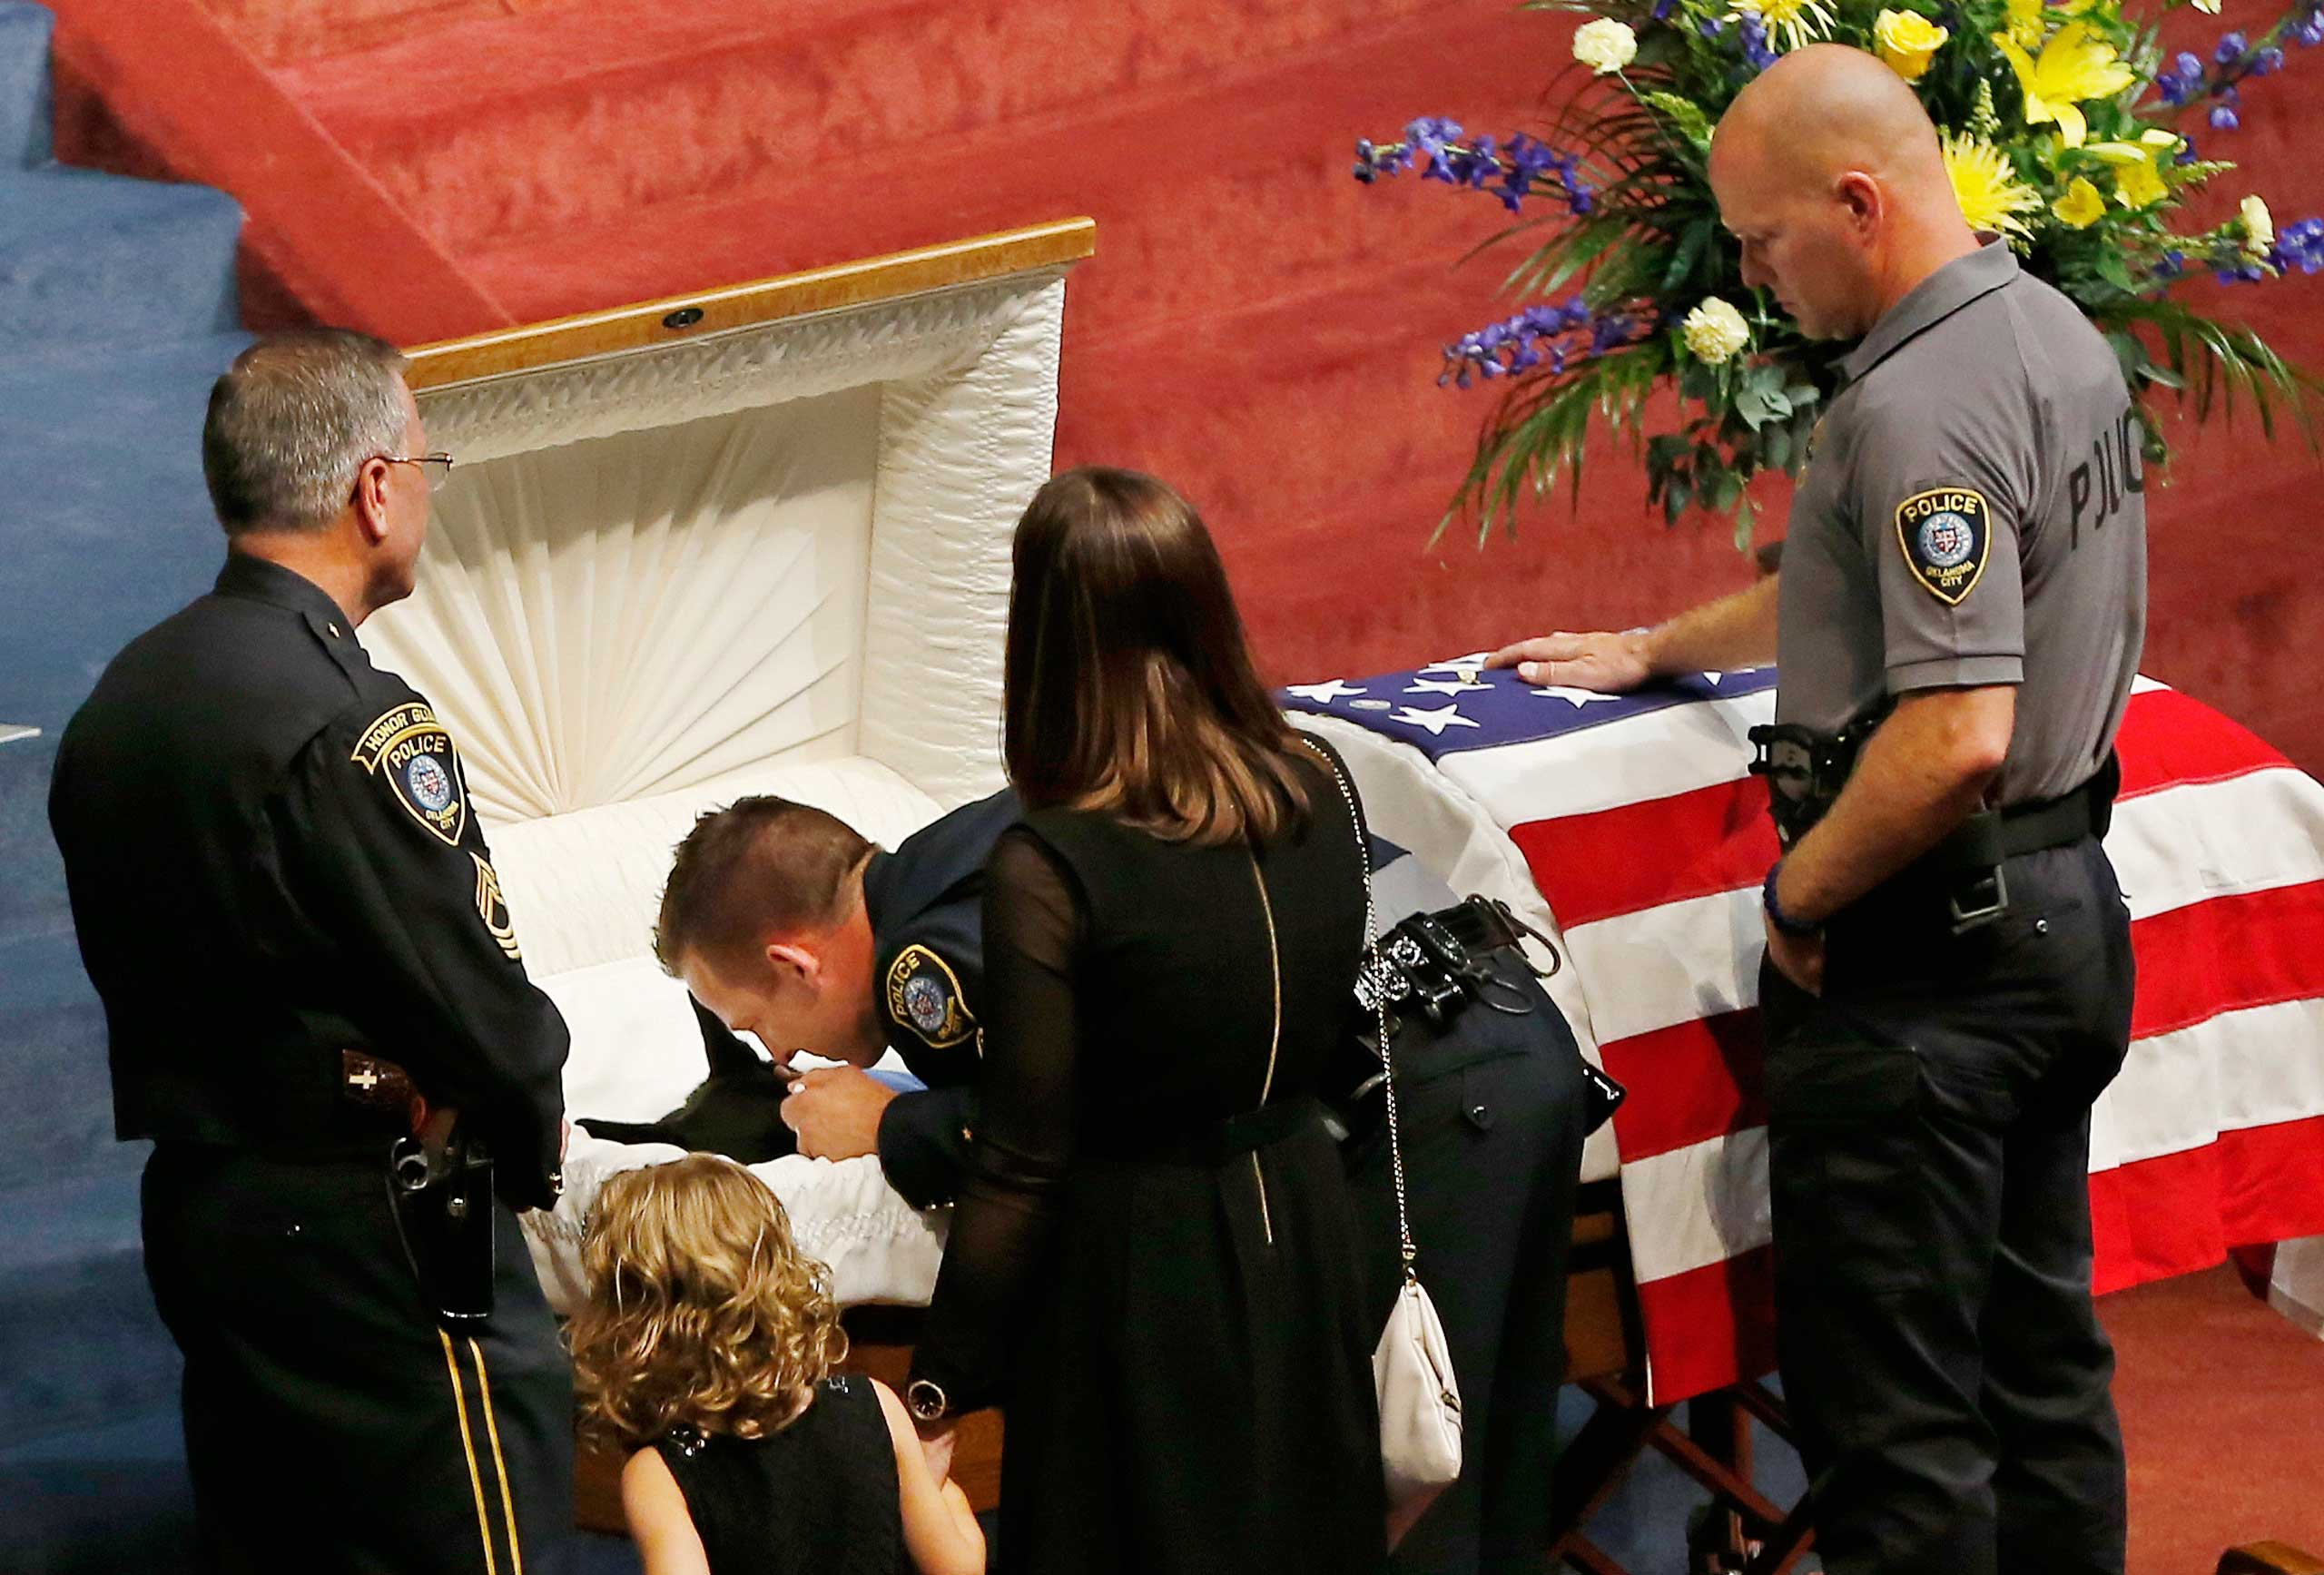 Oklahoma City police officer Sgt. Ryan Stark leans over the casket of his canine partner, K-9 Kye, following funeral services for the dog in Oklahoma City, Aug. 28, 2014.